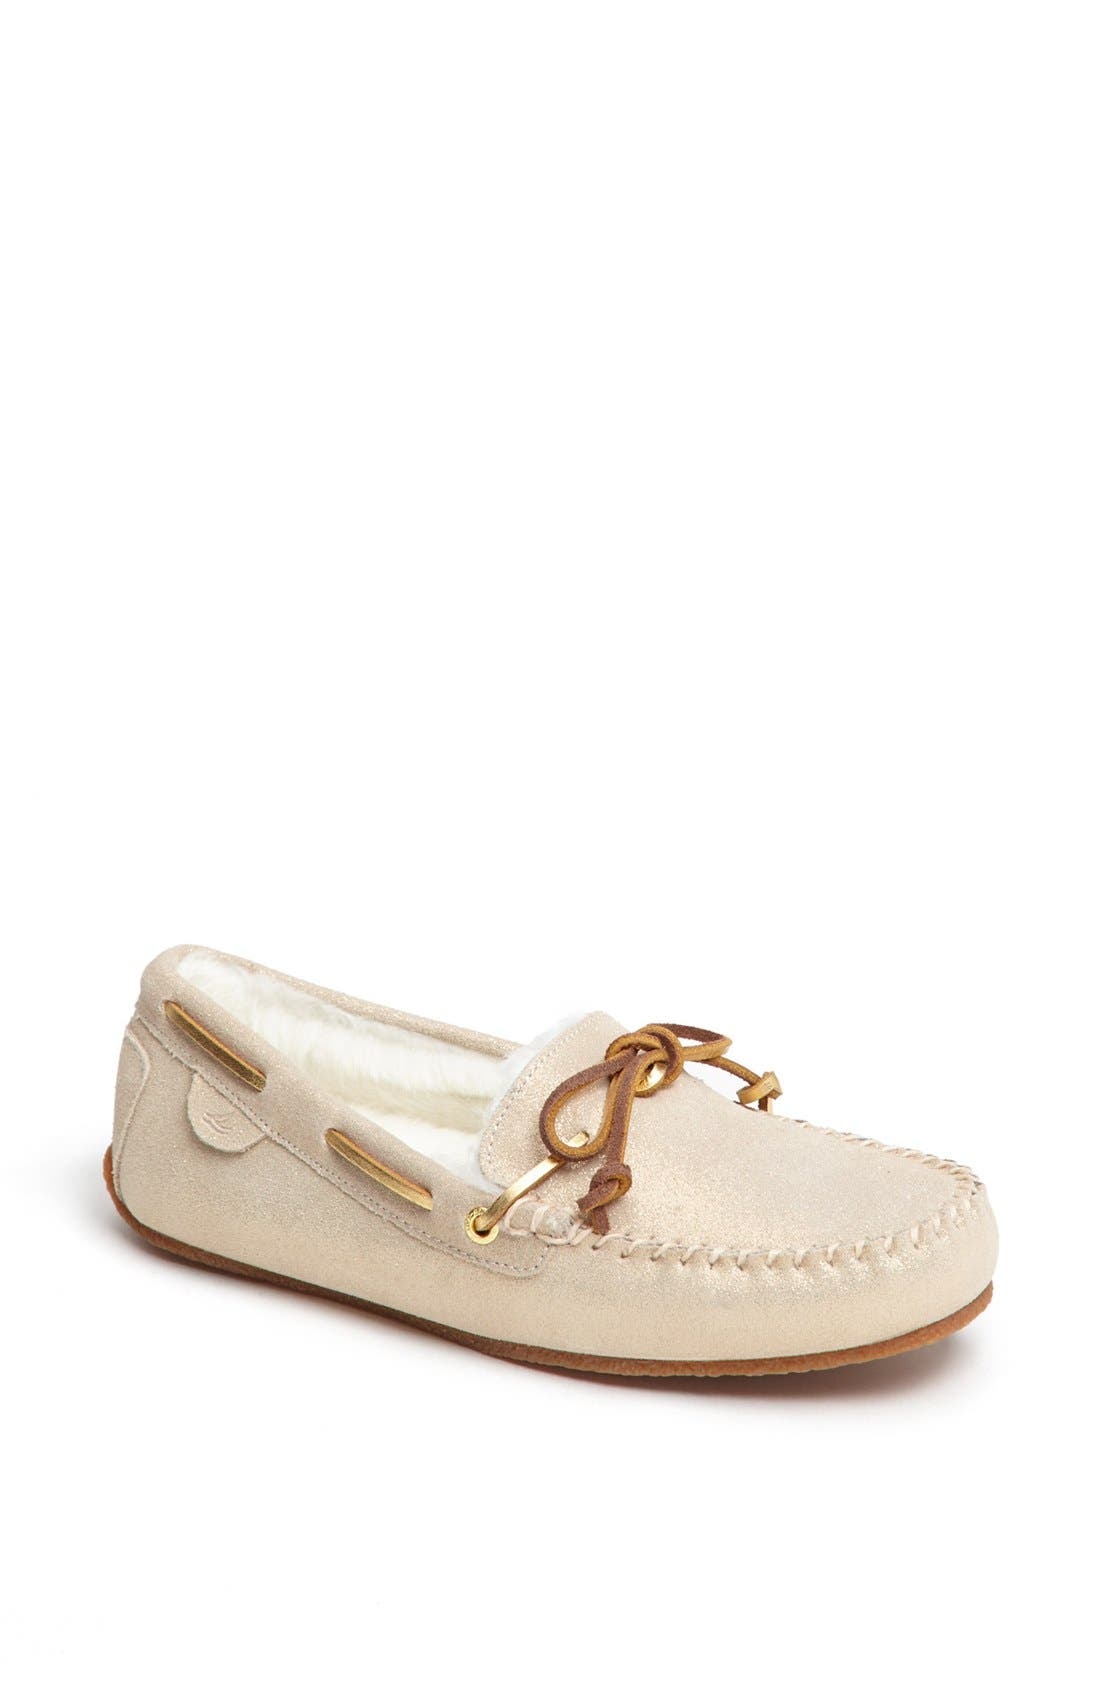 Main Image - Sperry Top-Sider® 'Scarlett' Faux Fur Slipper